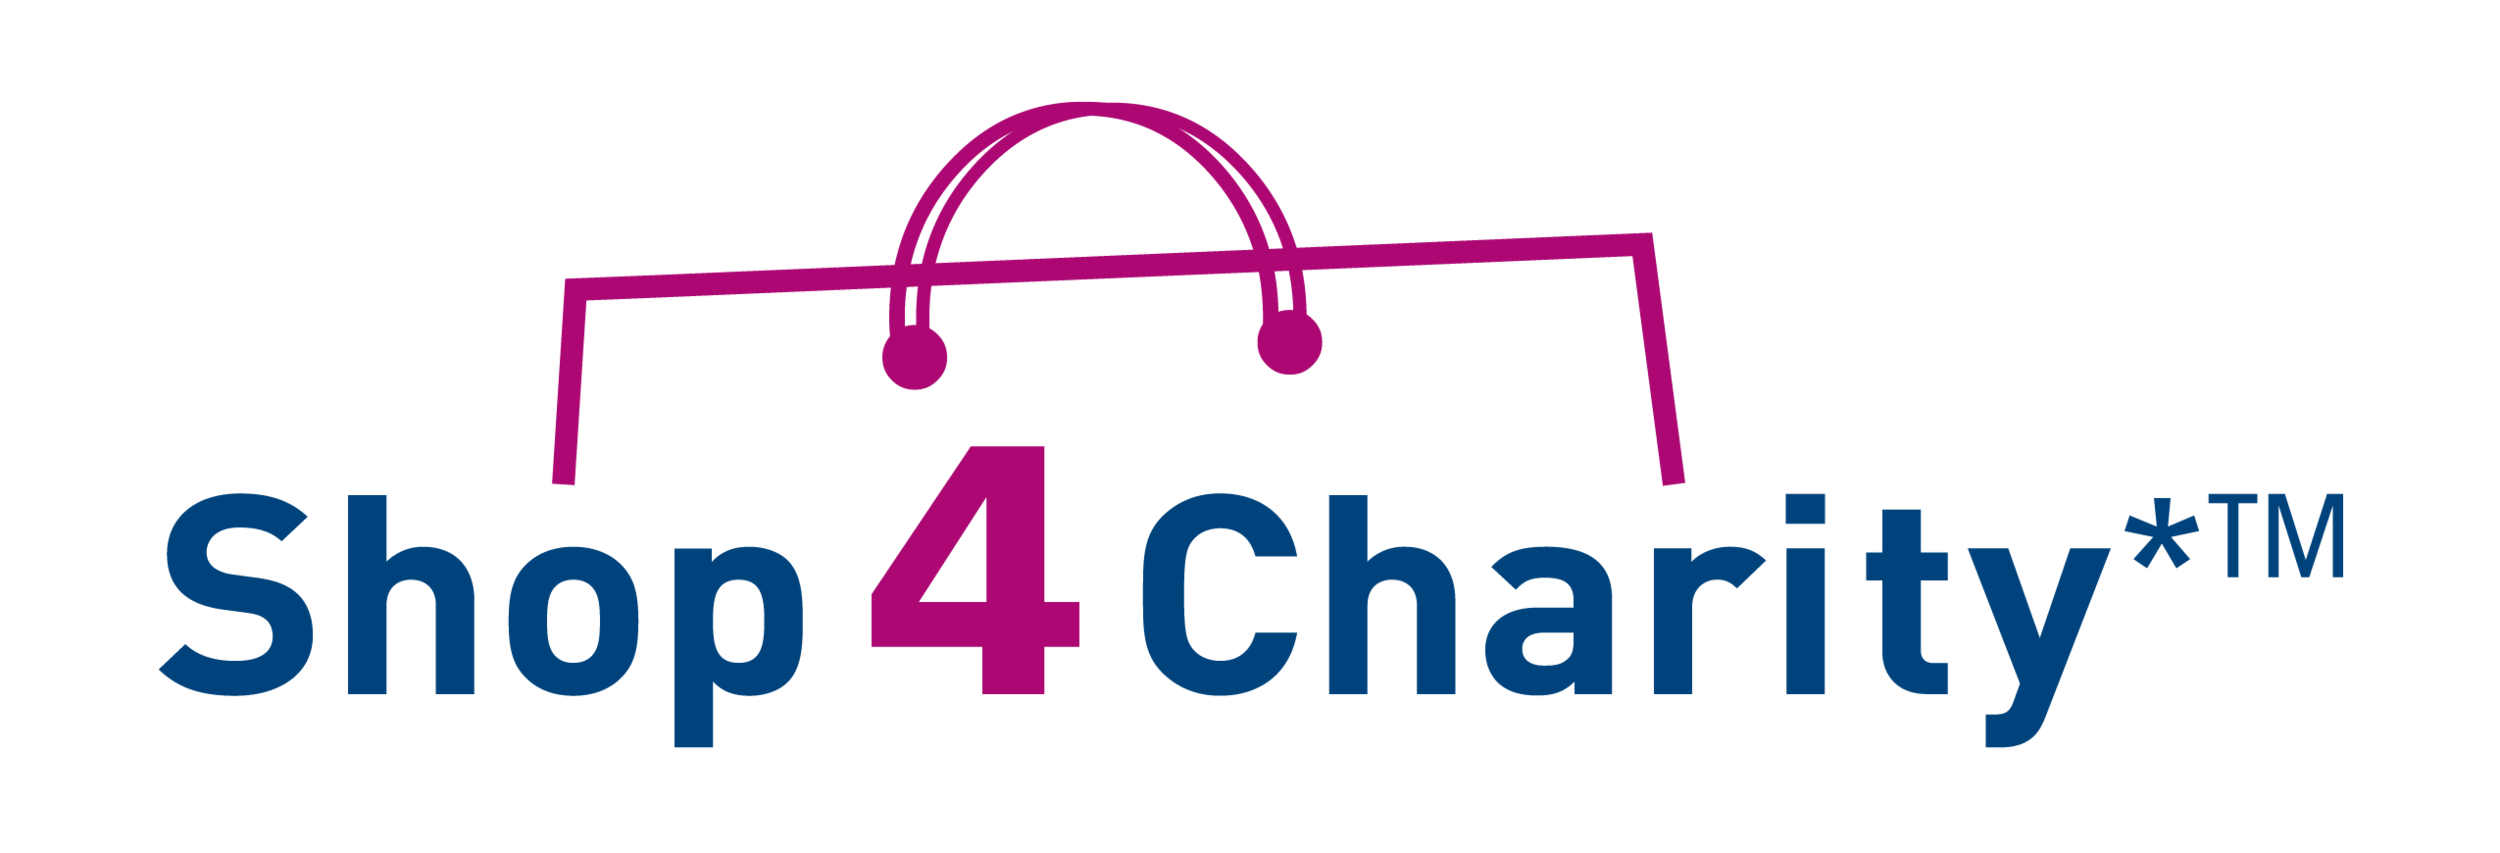 Shop4Charity Logo_colour-01.png